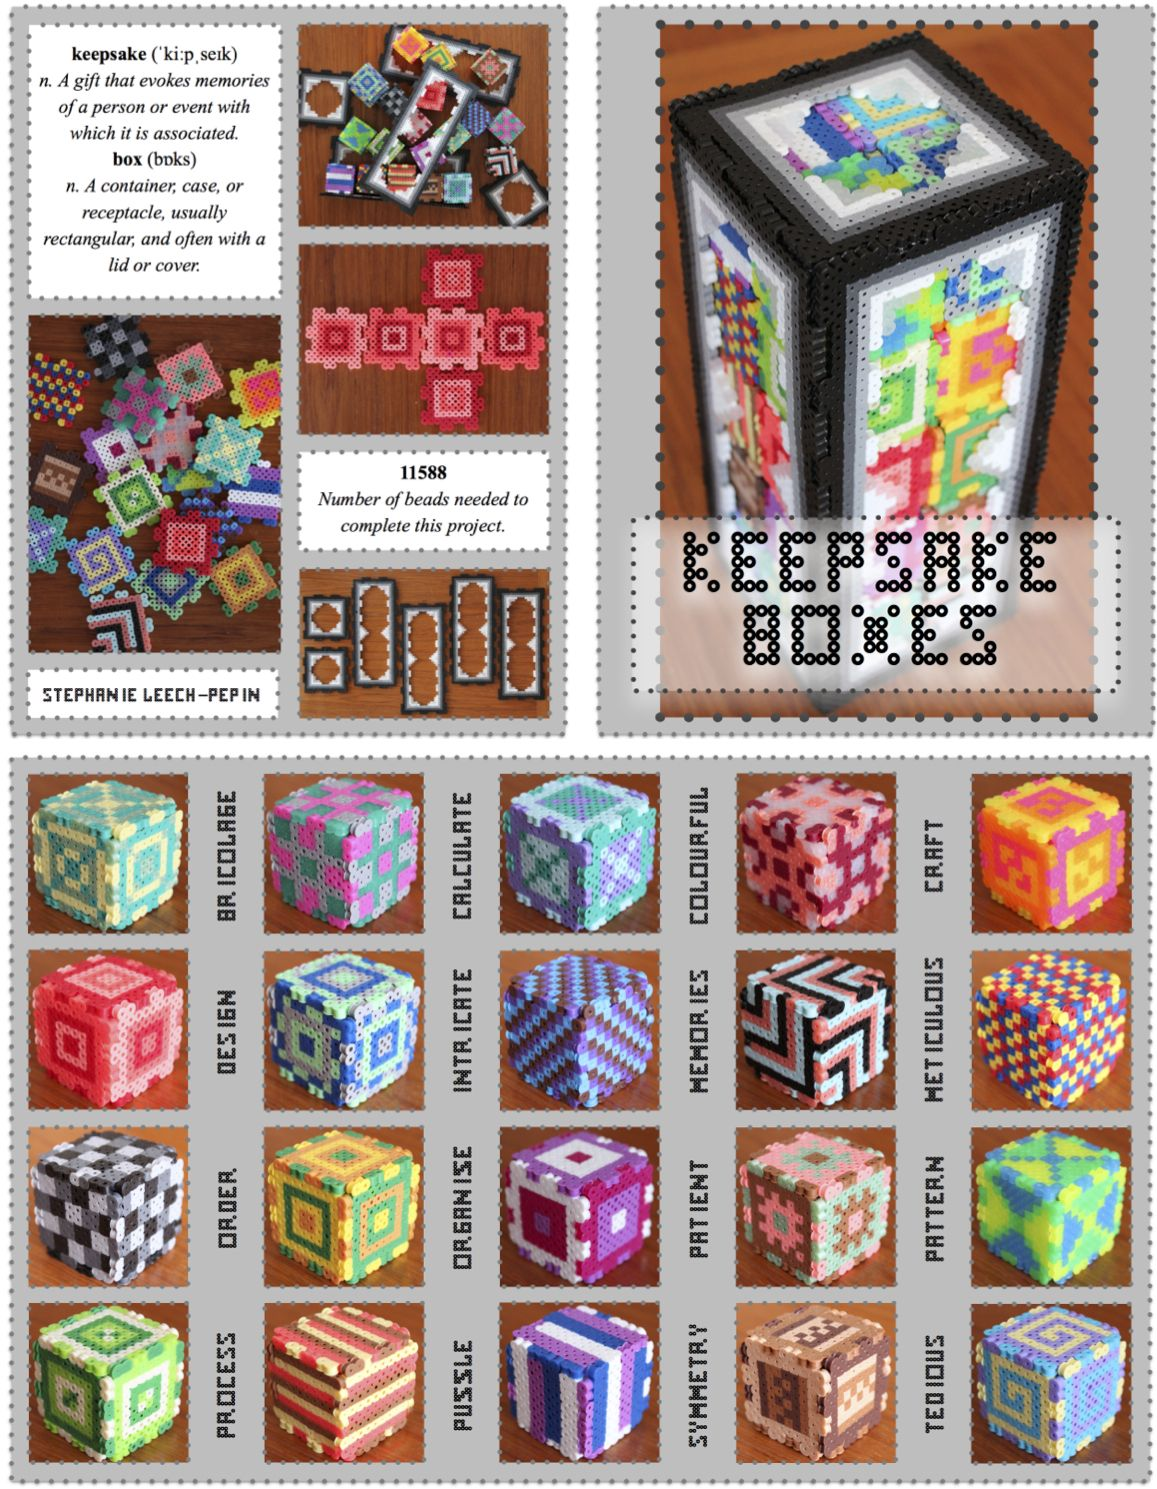 small resolution of perler bead keepsake boxes so much fun by steph leech pepin